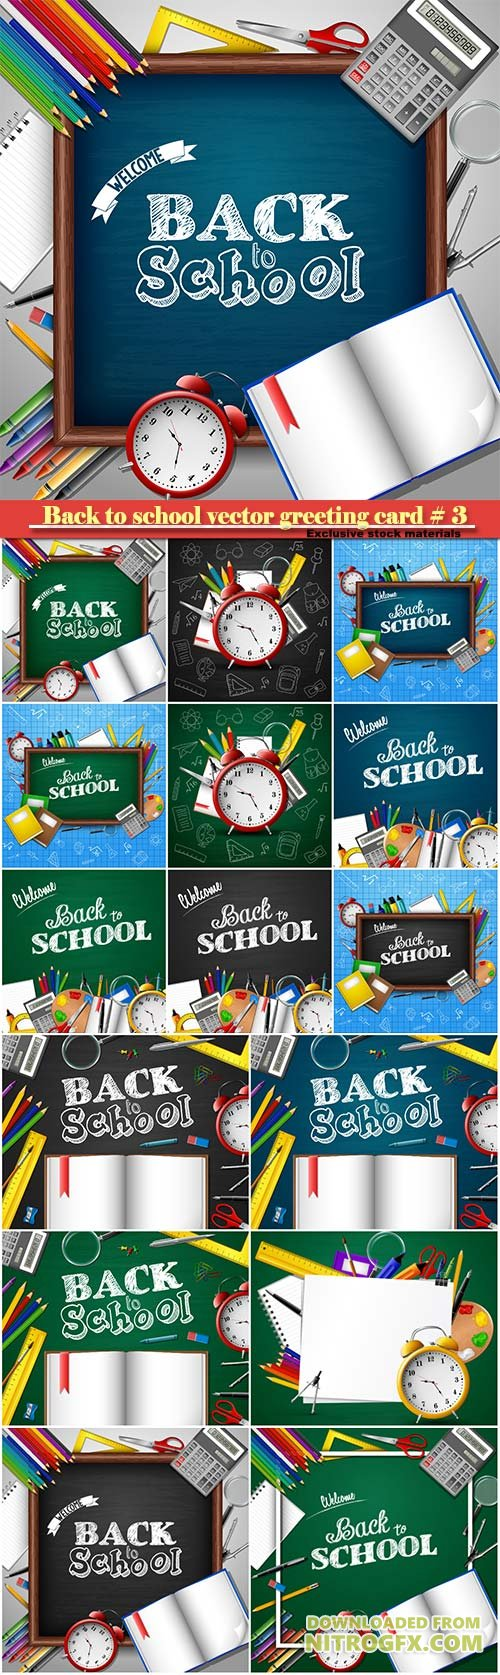 Back to school vector greeting card # 3